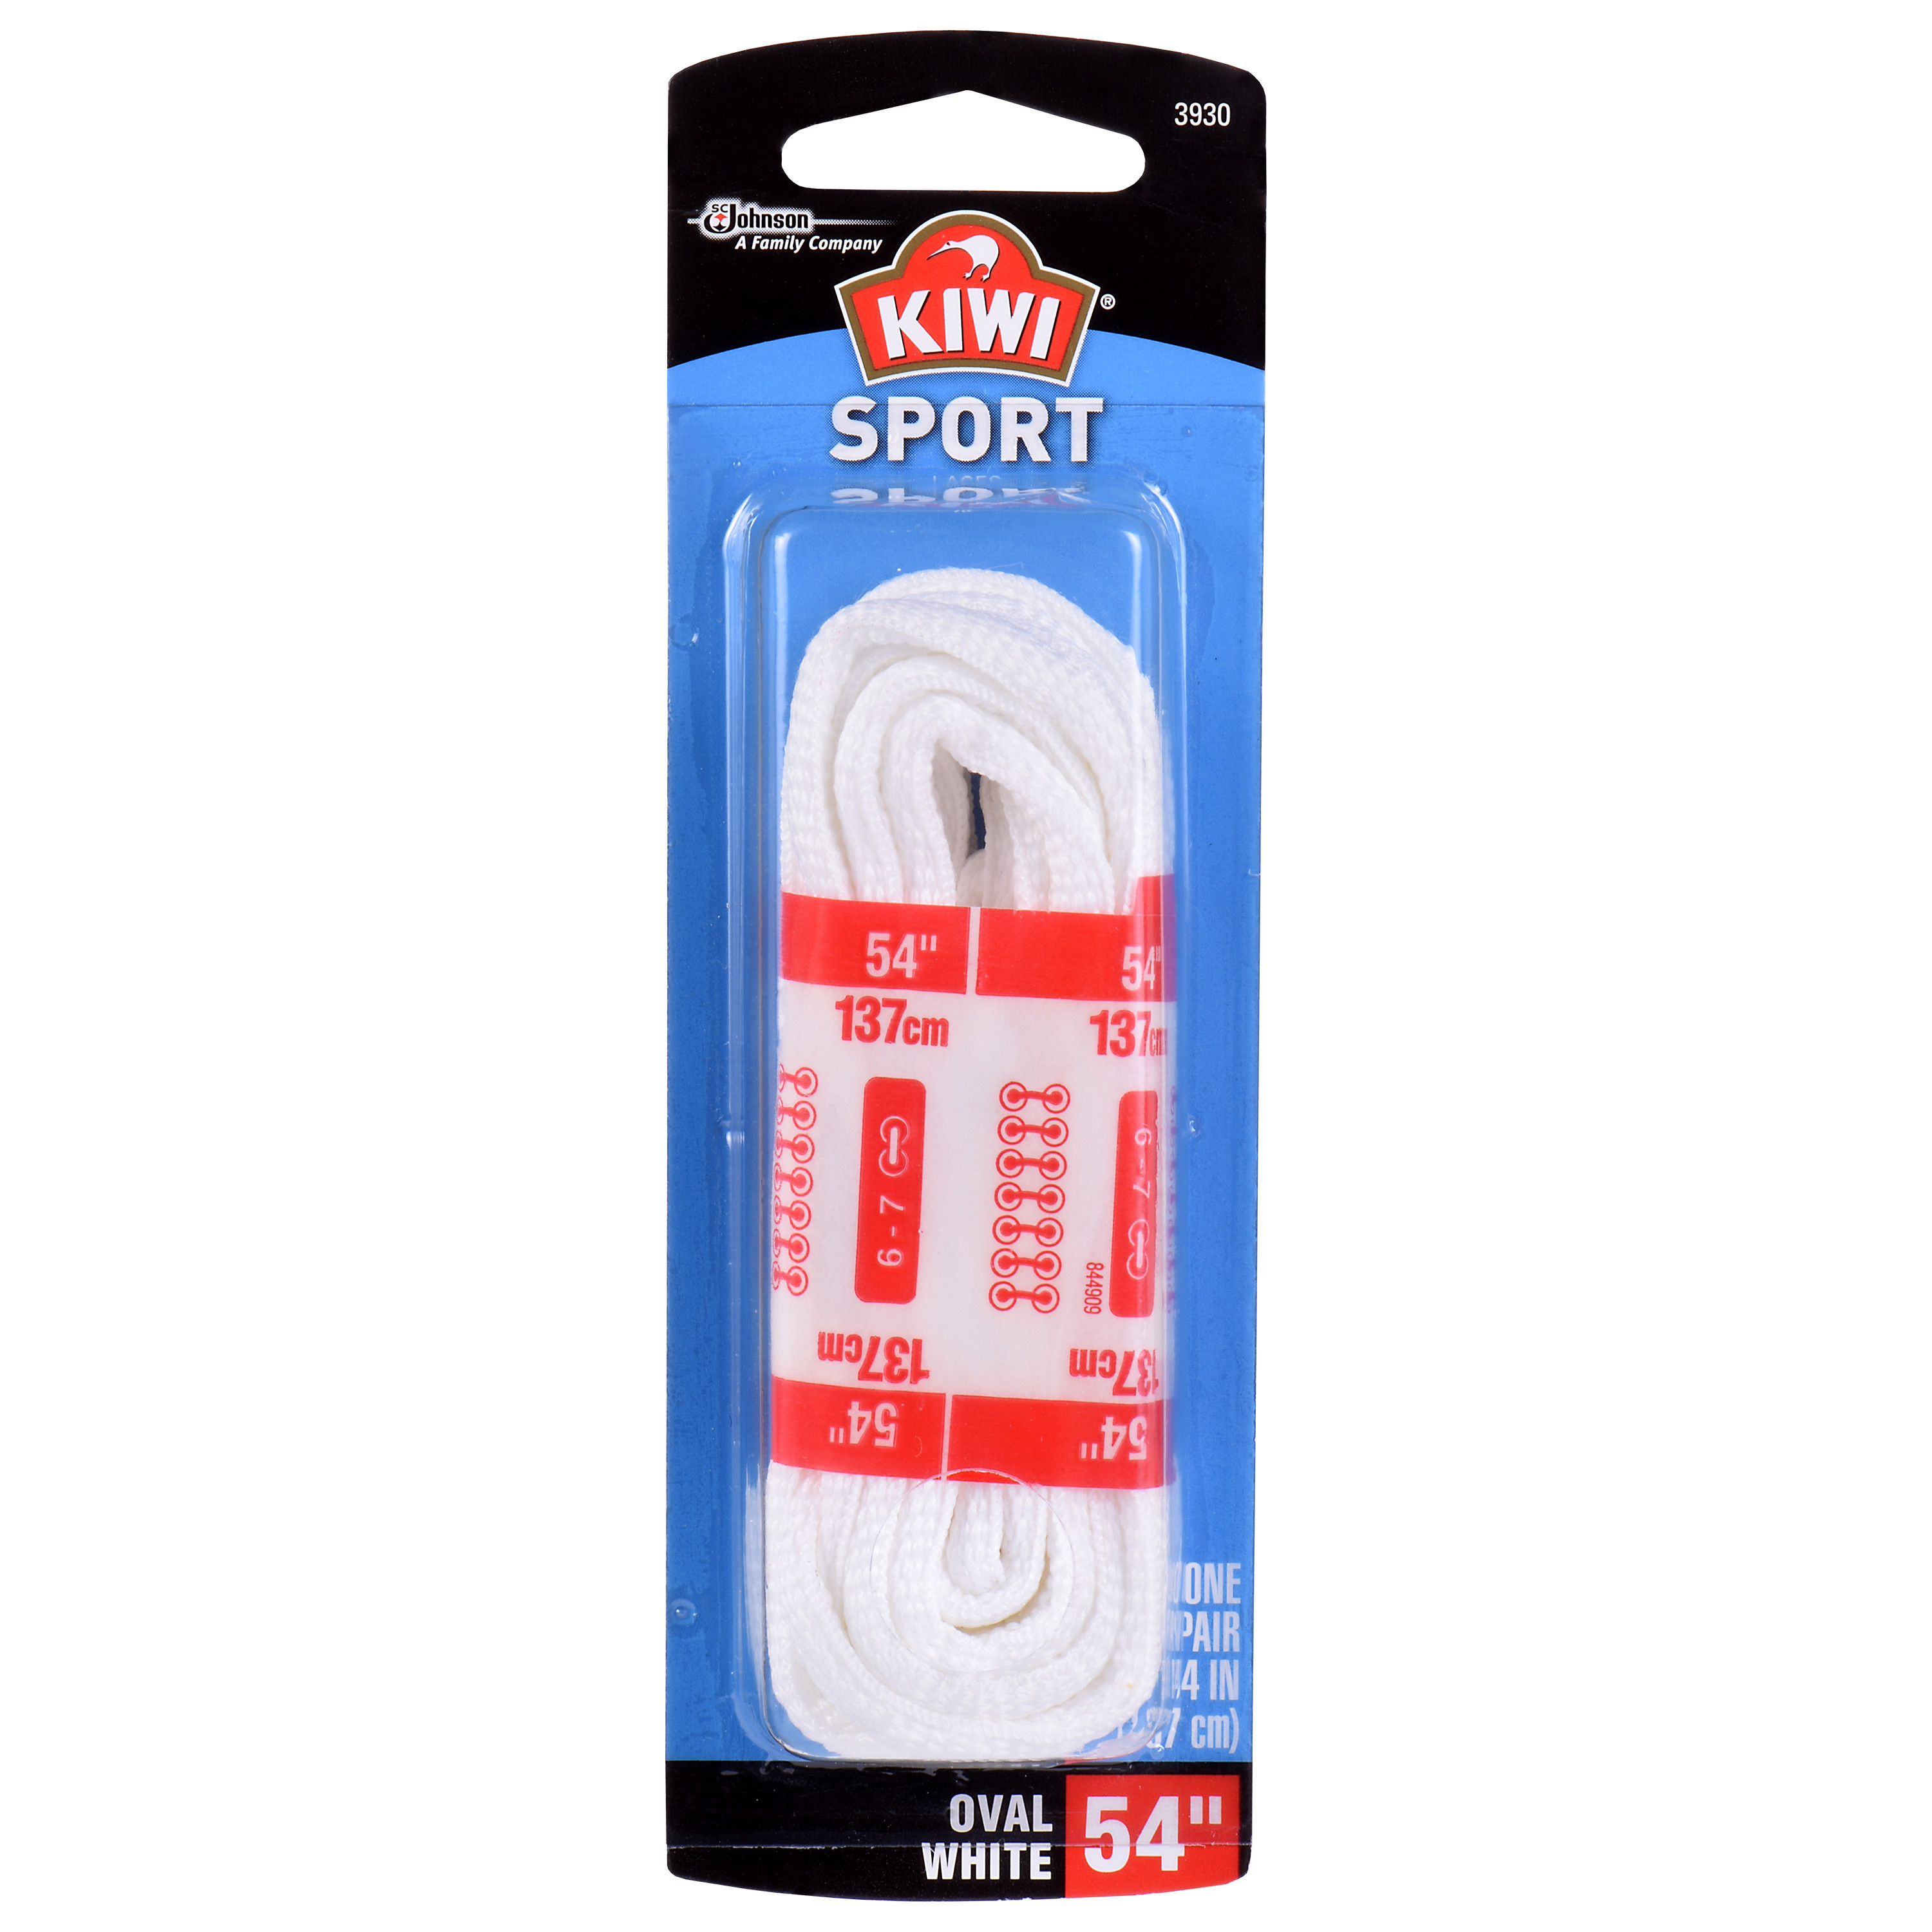 Sport Oval Laces White 54 1 pair